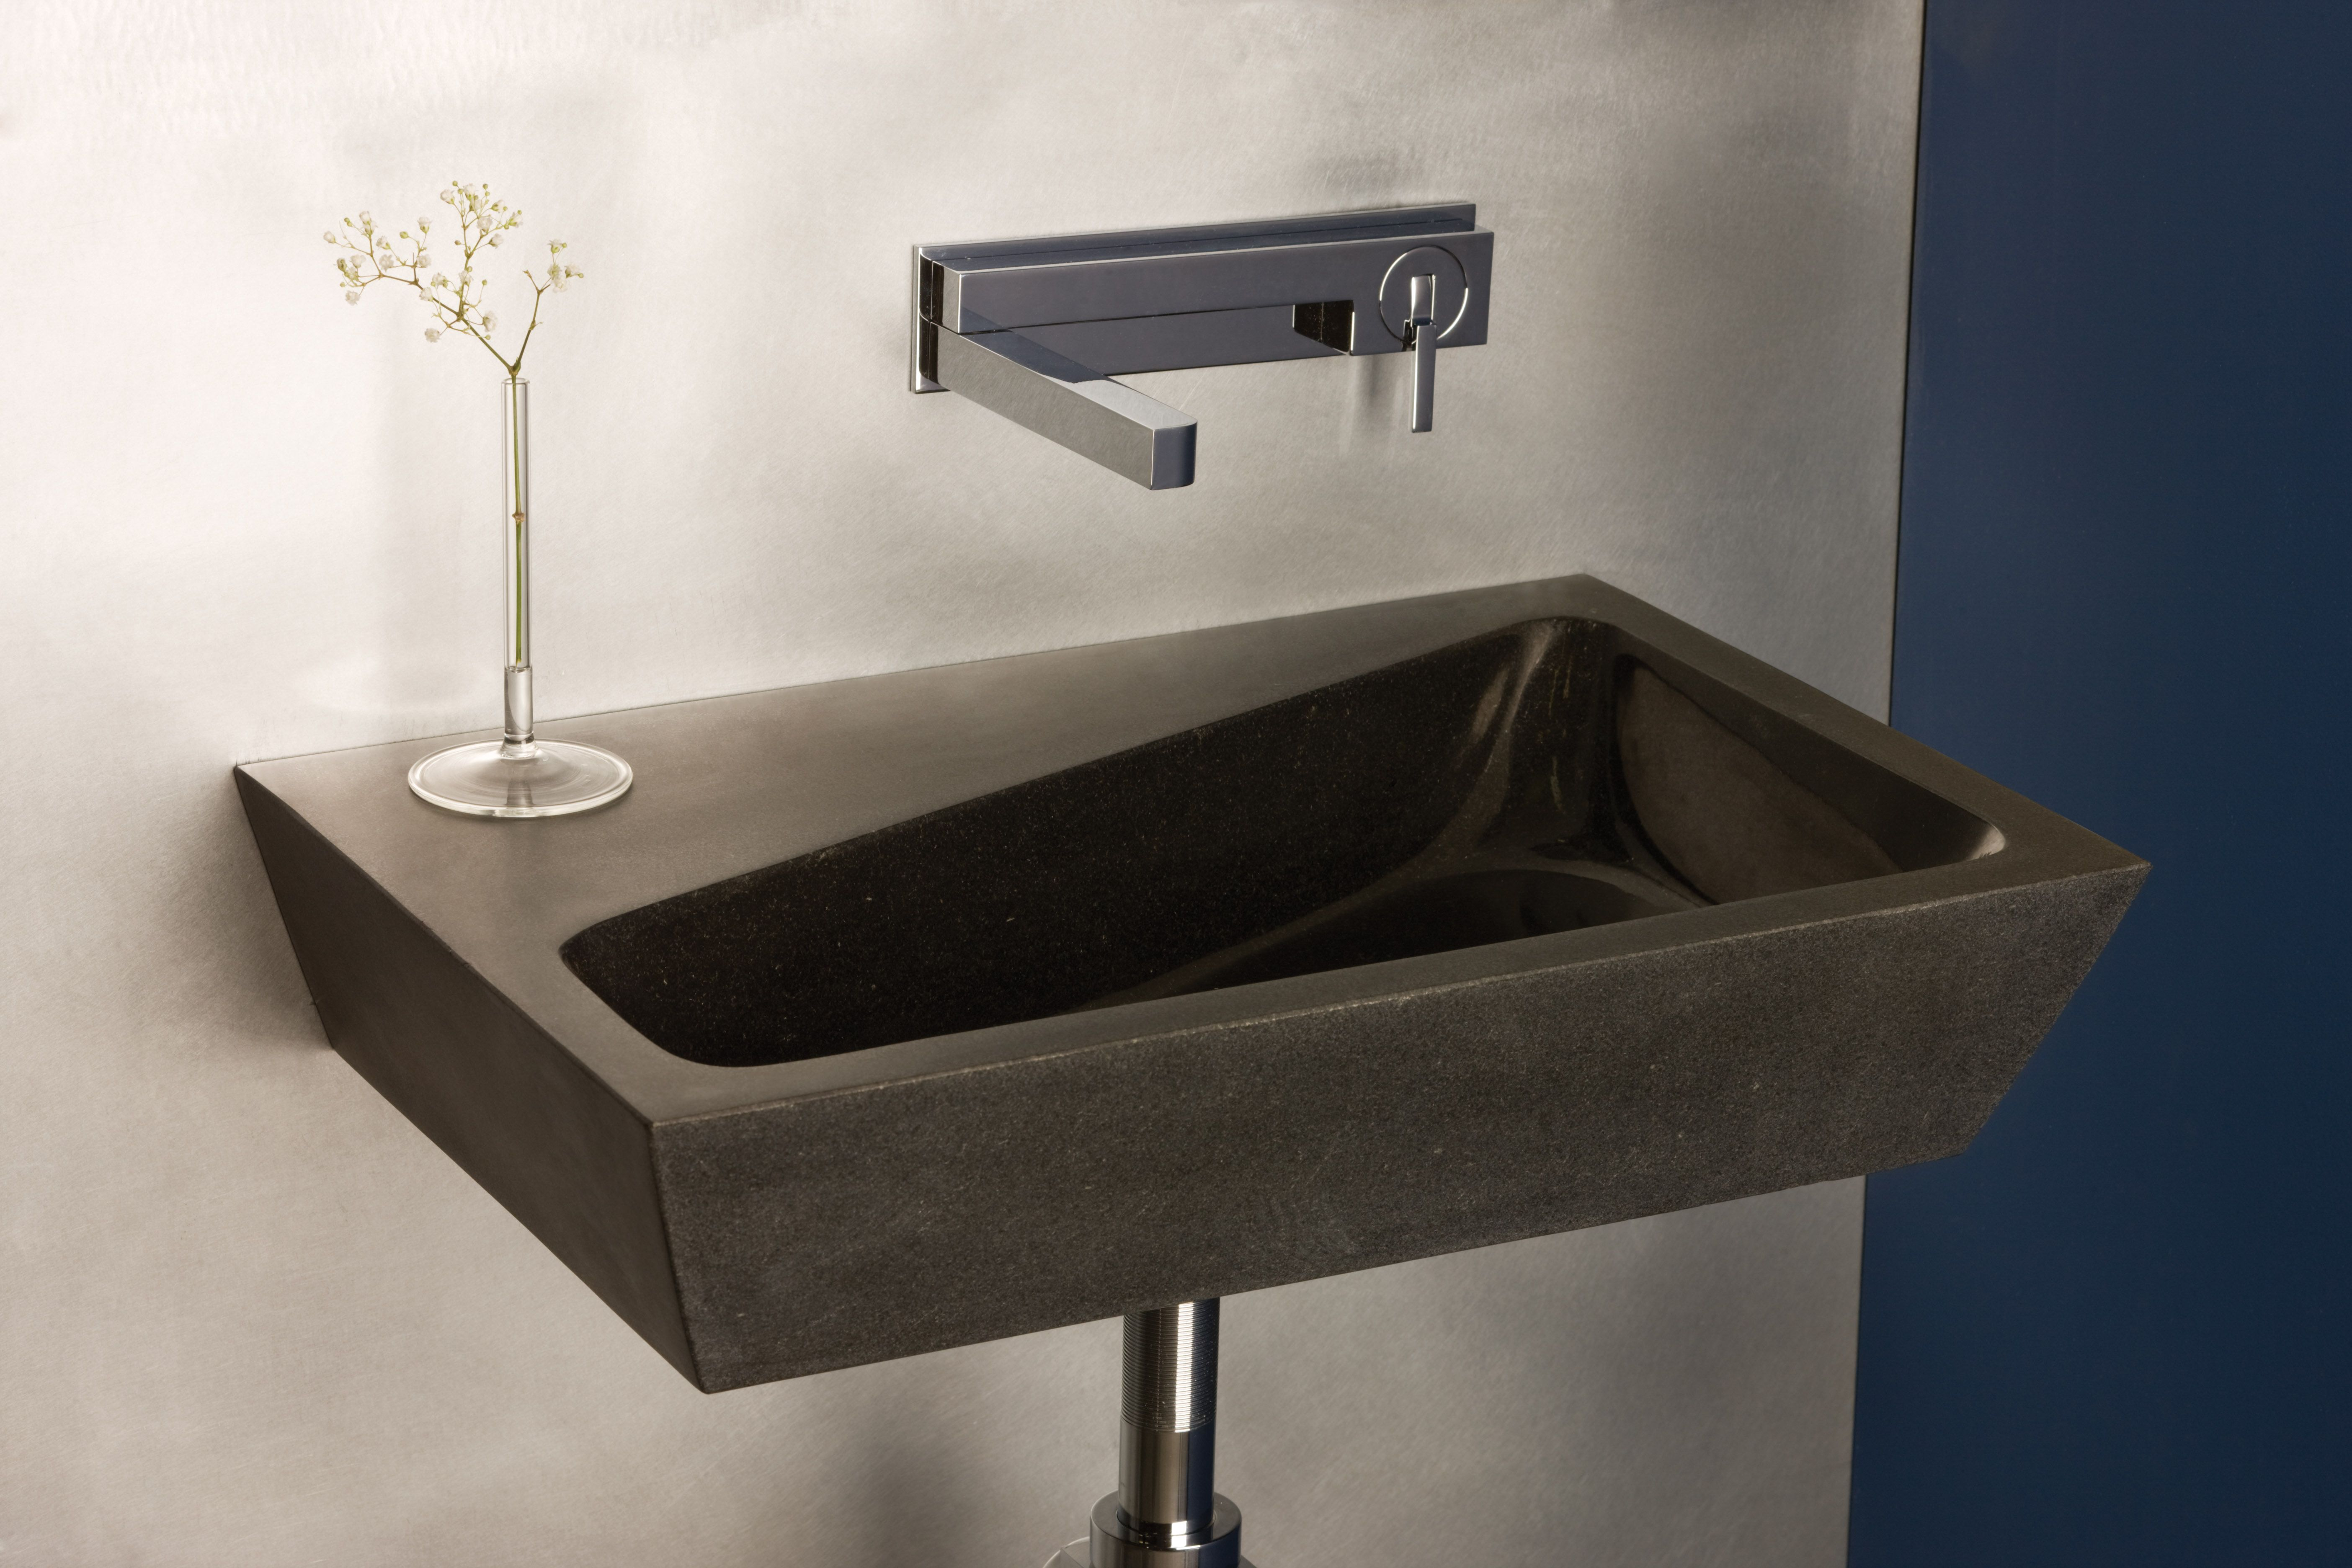 wall mounted kitchen sink how to replace cabinets the new stone forest 2tone mount derives its